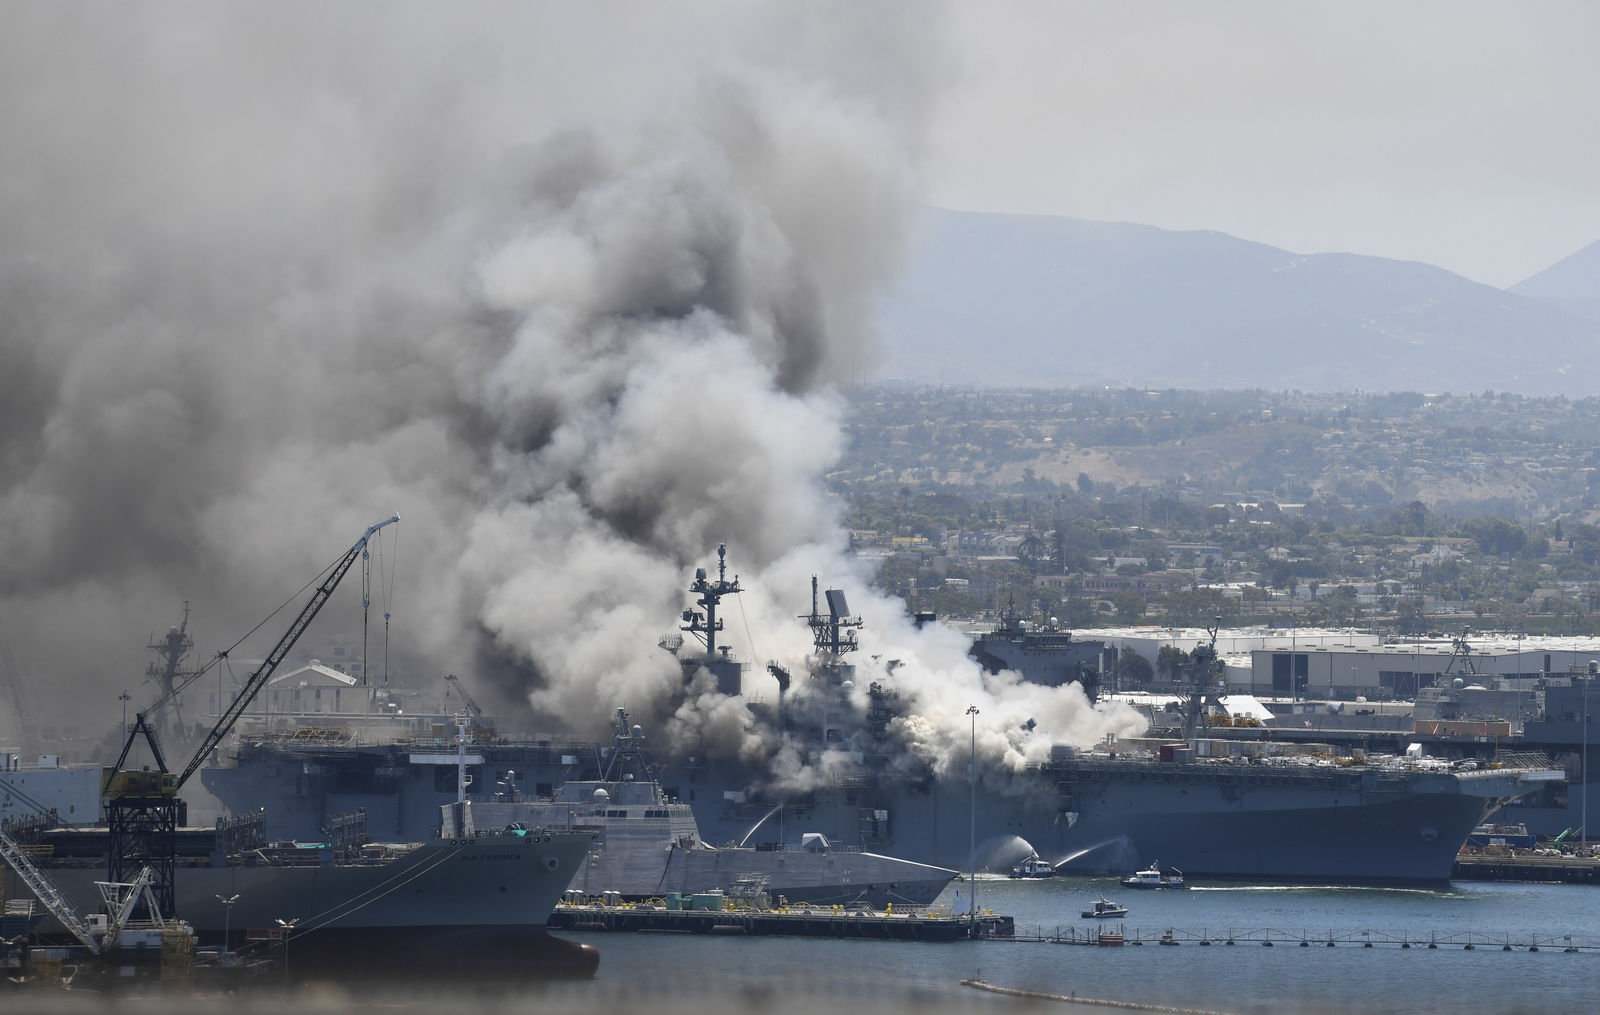 Smoke rises from the USS Bonhomme Richard at Naval Base San Diego Sunday, July 12, 2020, in San Diego after an explosion and fire Sunday on board the ship at Naval Base San Diego. (AP Photo/Denis Poroy)